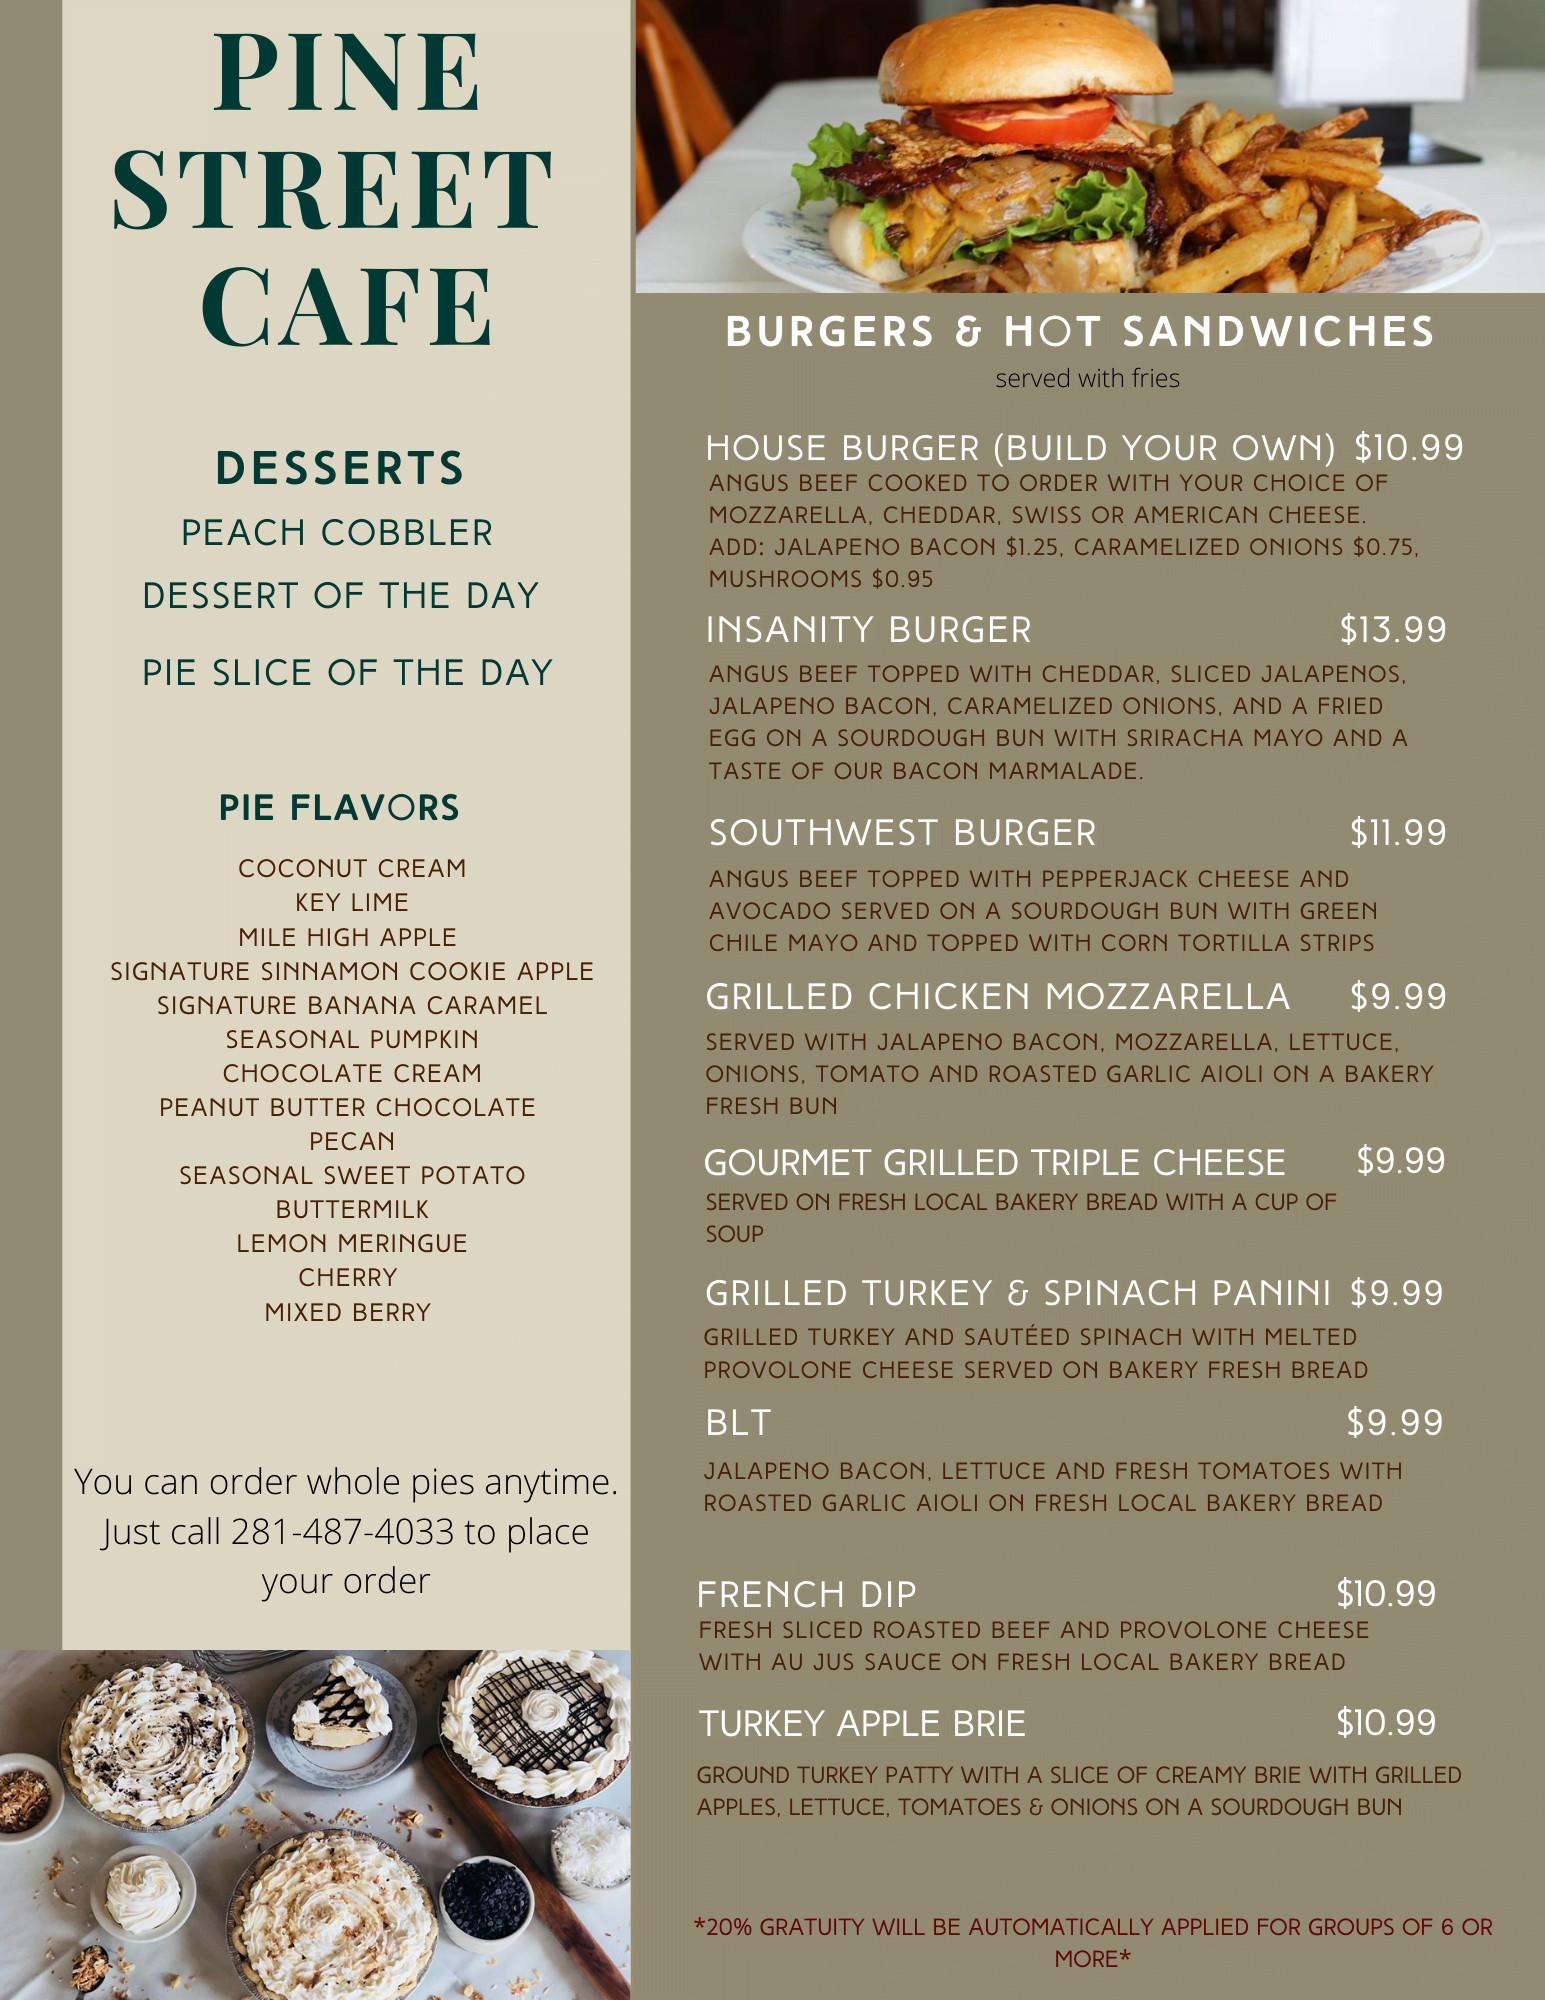 pine street cafe lunch menu burgers and desserts